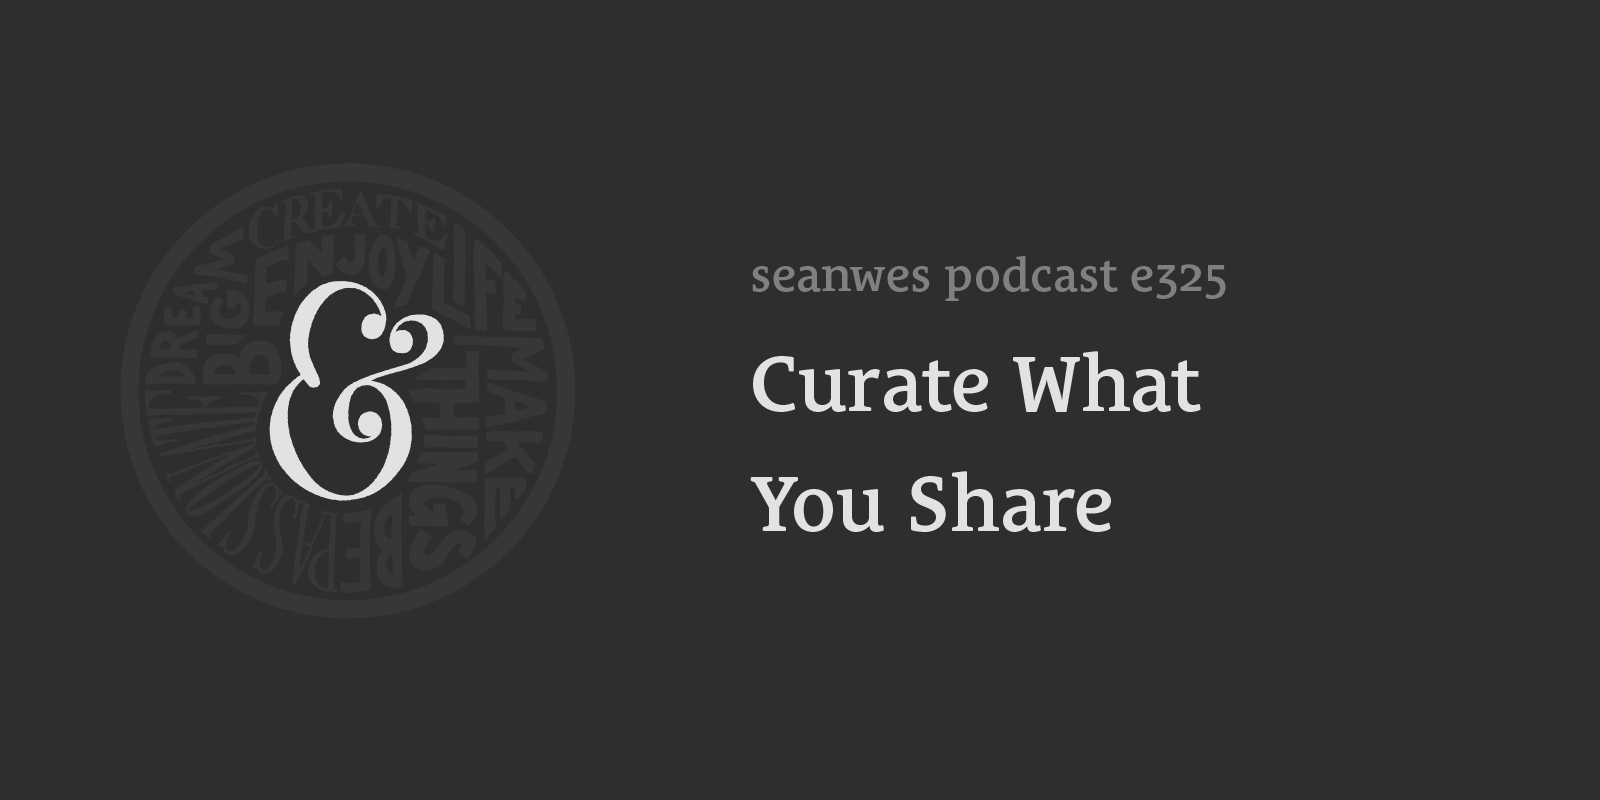 Curate What You Share